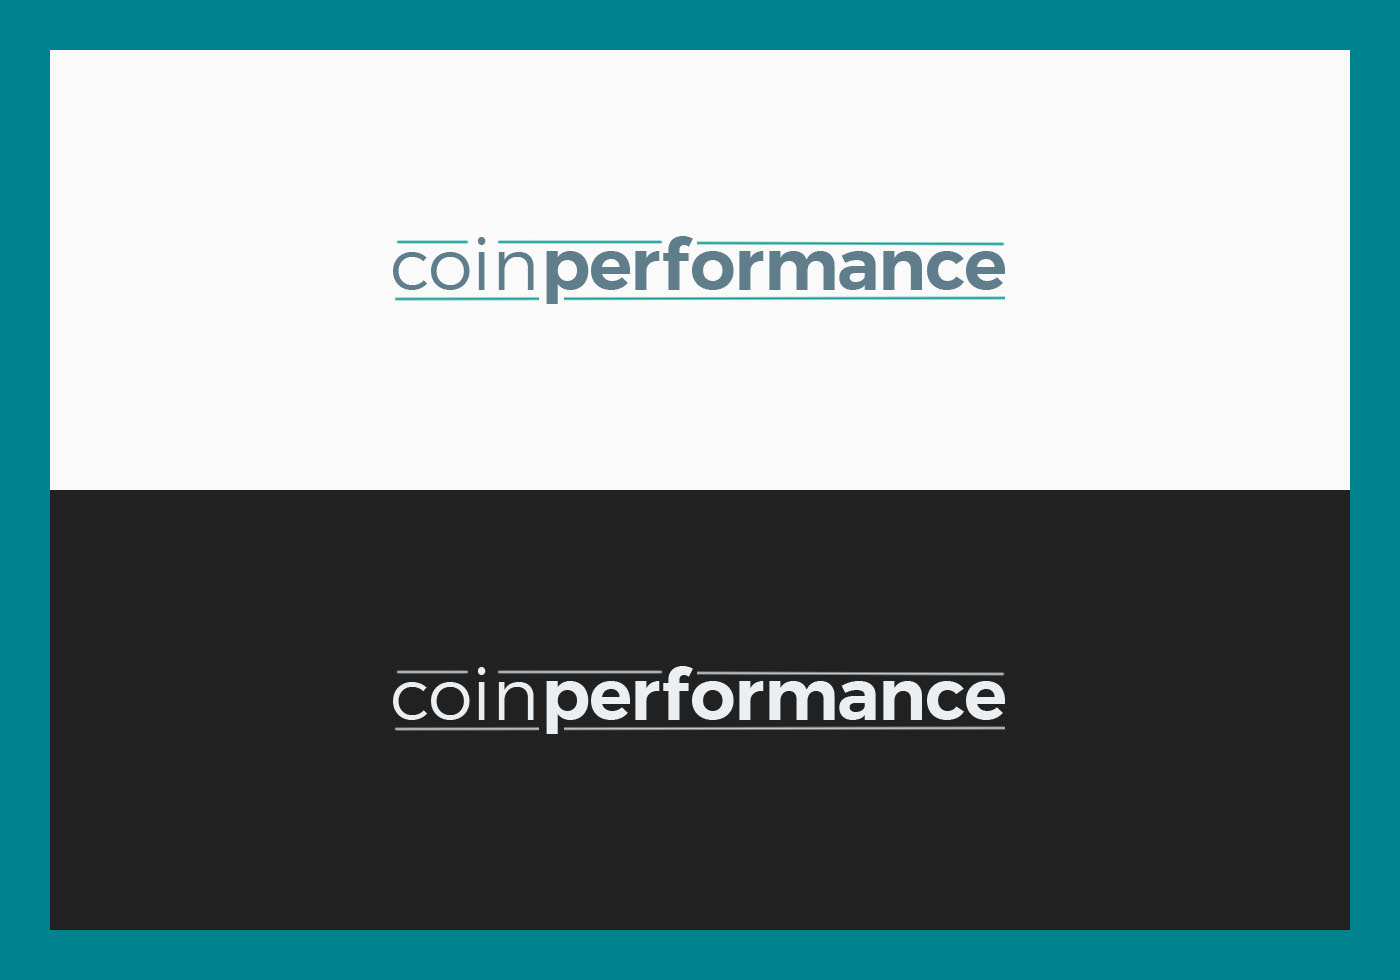 coinperformance.com image